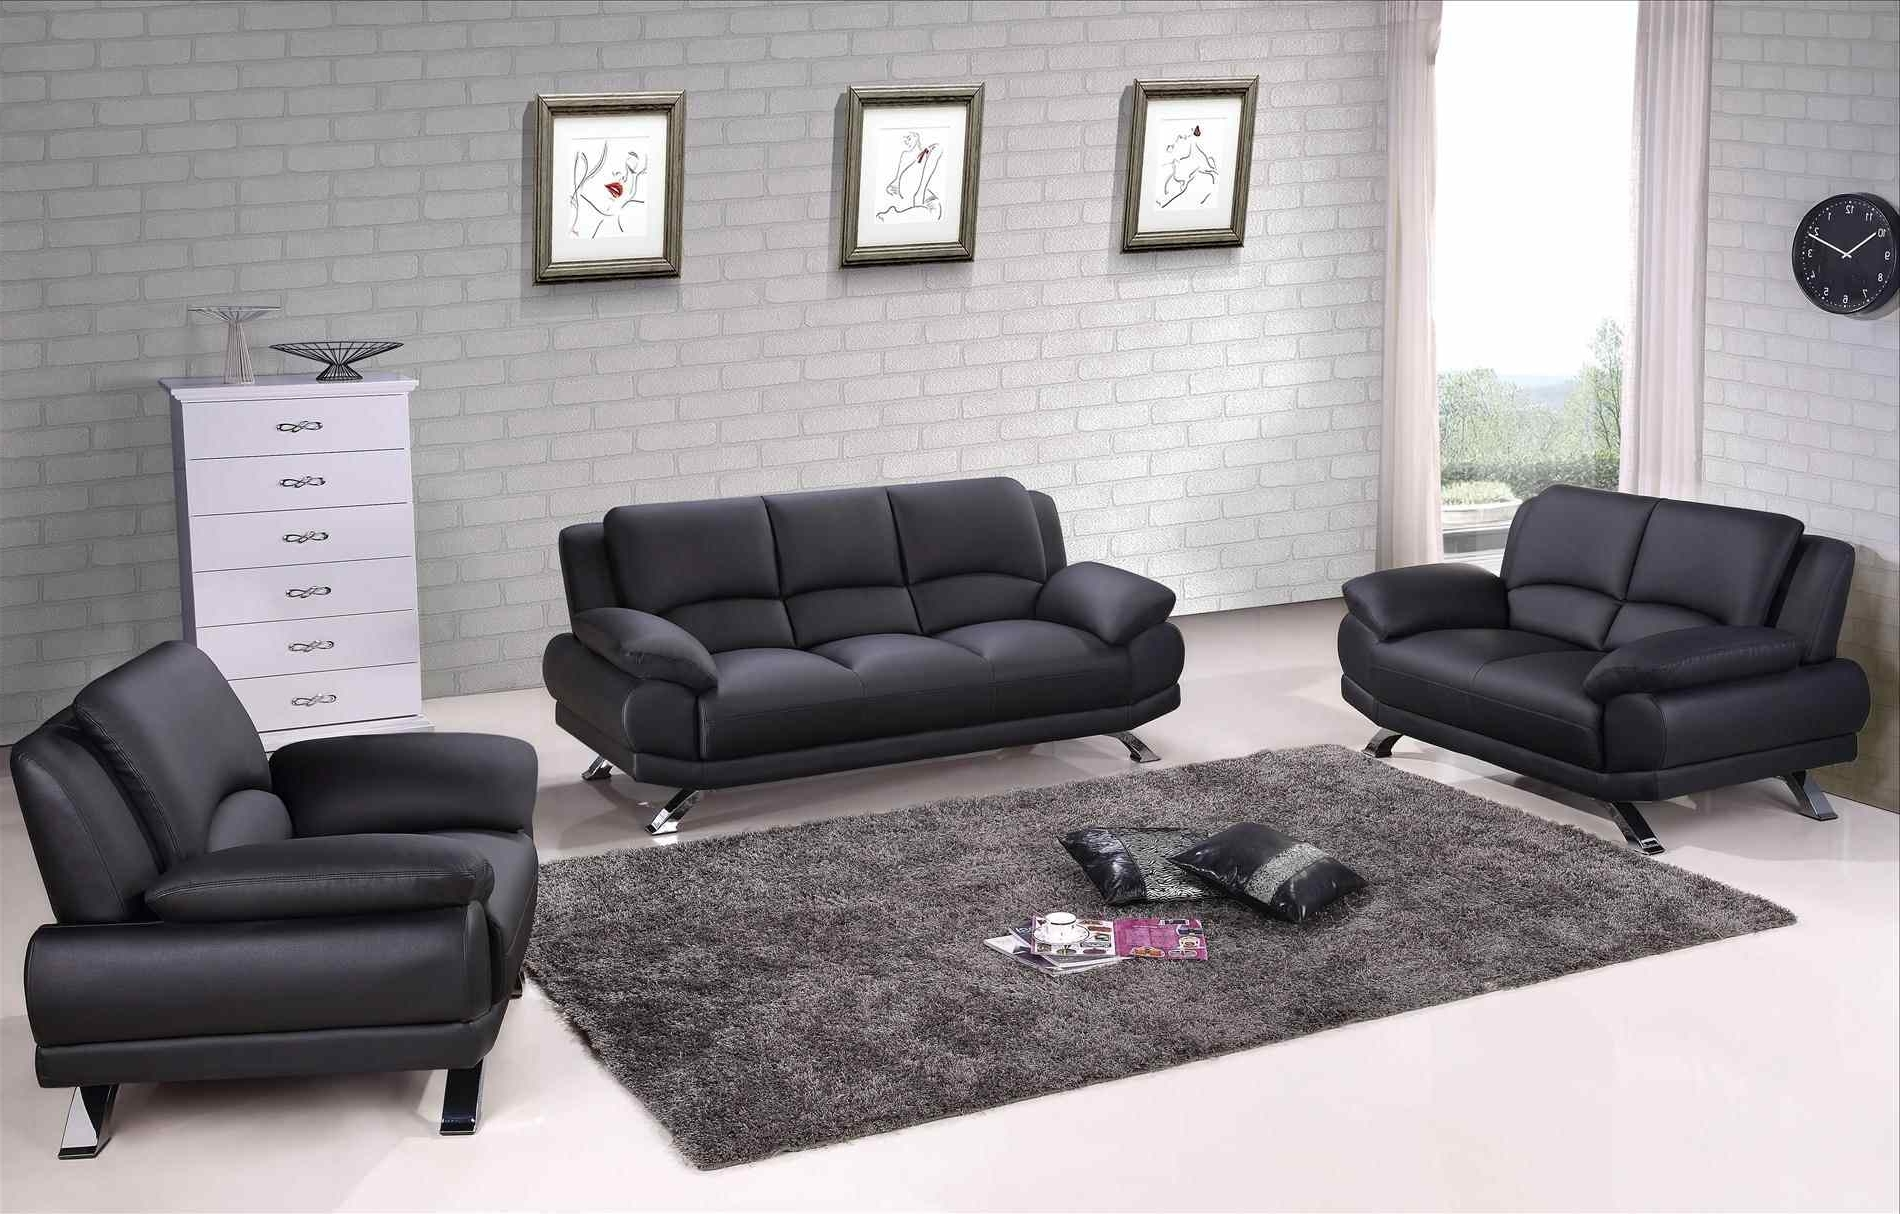 Couch : Genuine Leather Couches Kramfors Lshape Sectional Youtube With Most Recently Released Nj Sectional Sofas (View 3 of 20)